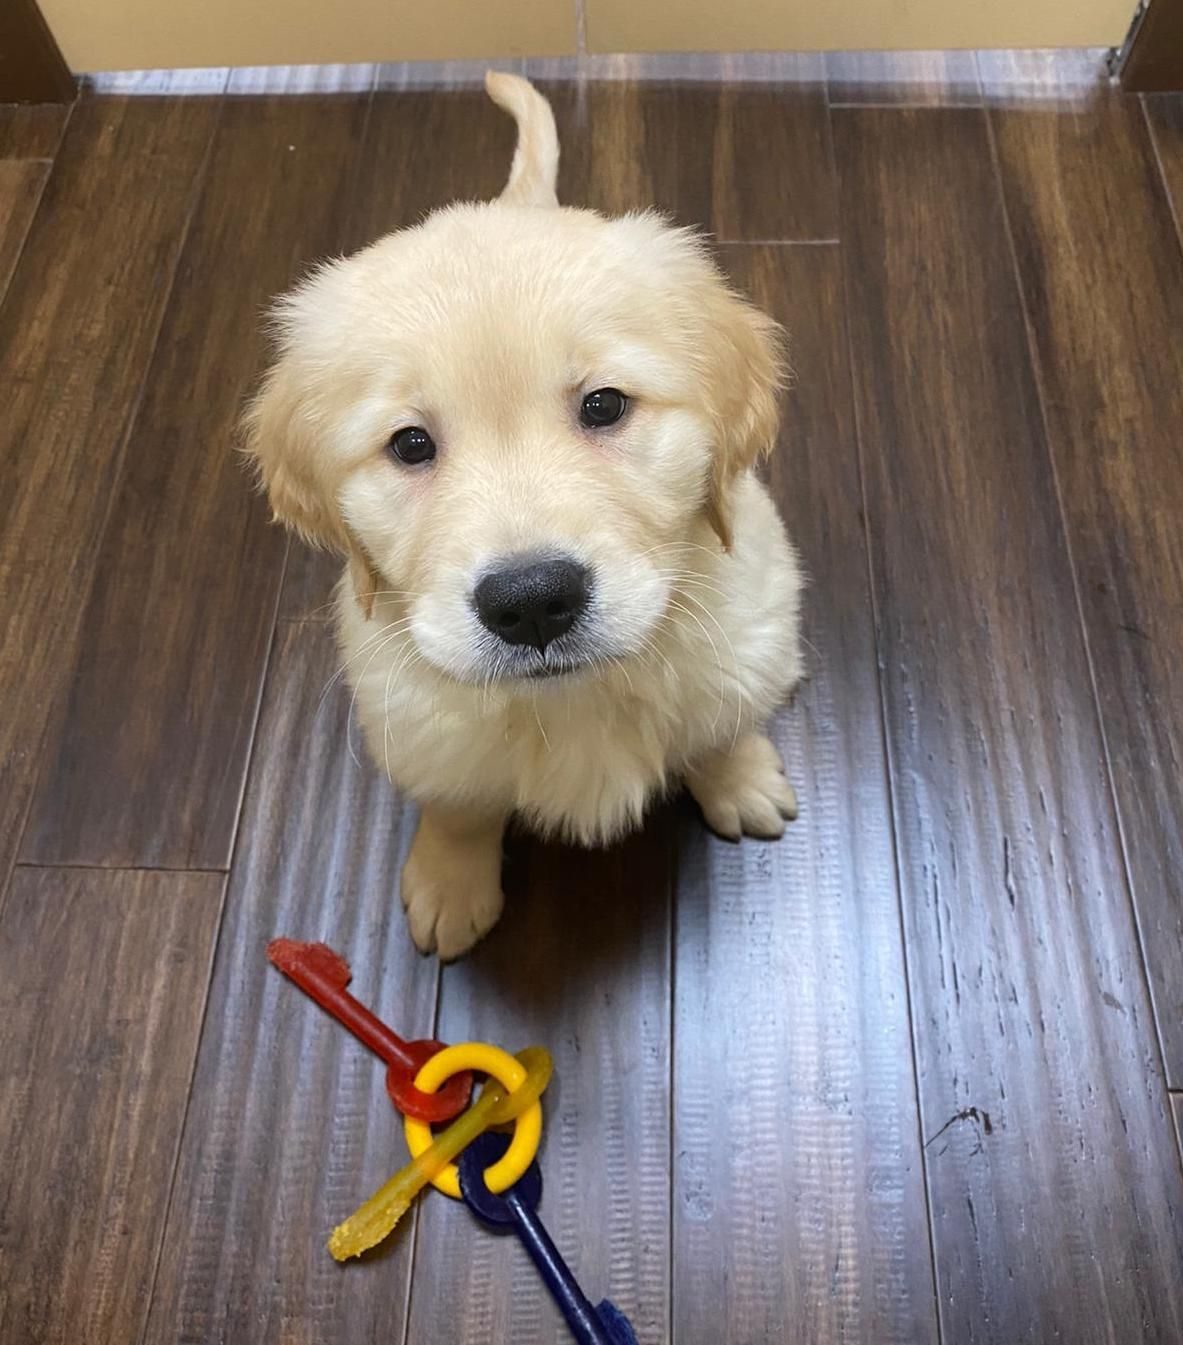 Petland puppies for sale near me